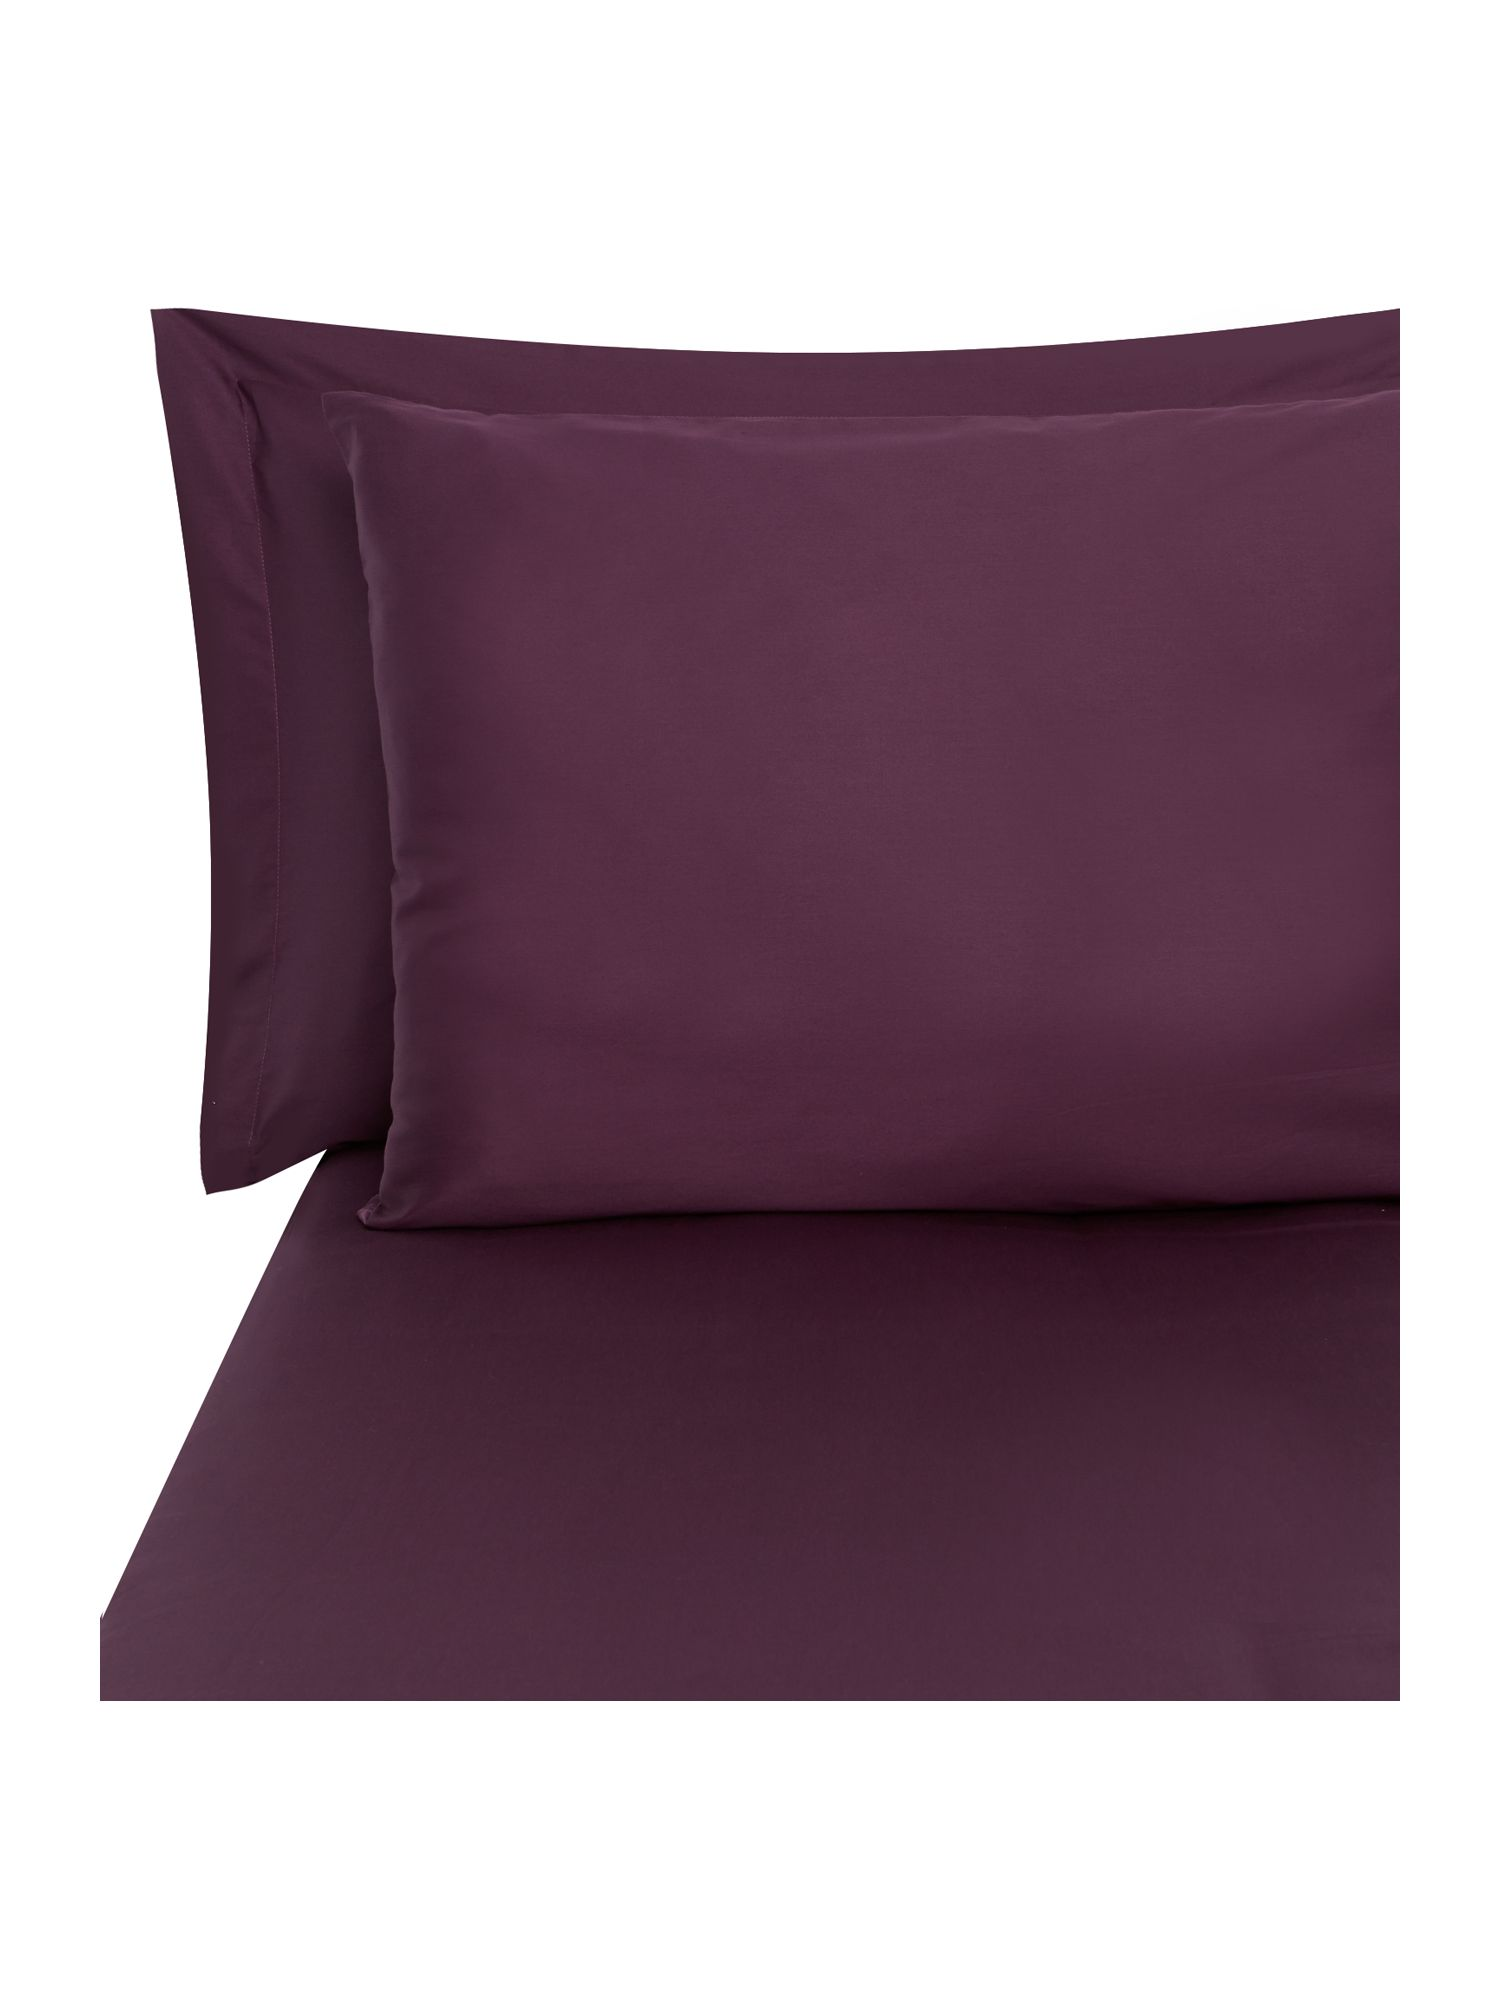 Amethyst flat sheet double